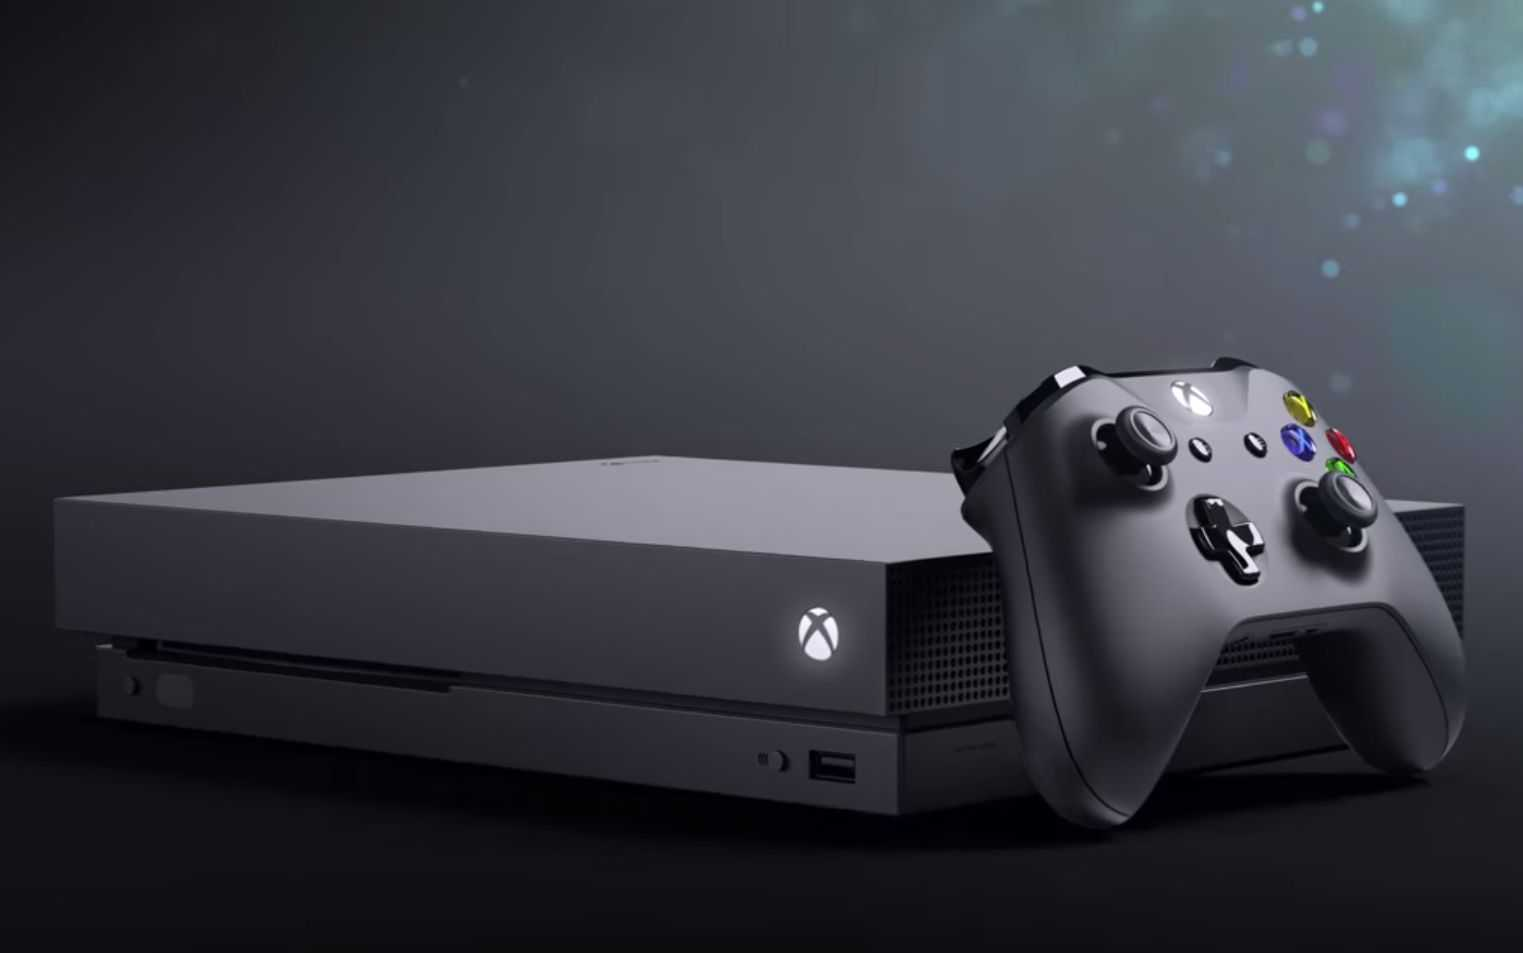 Microsoft Confirms Xbox One Will Get Keyboard and Mouse Support